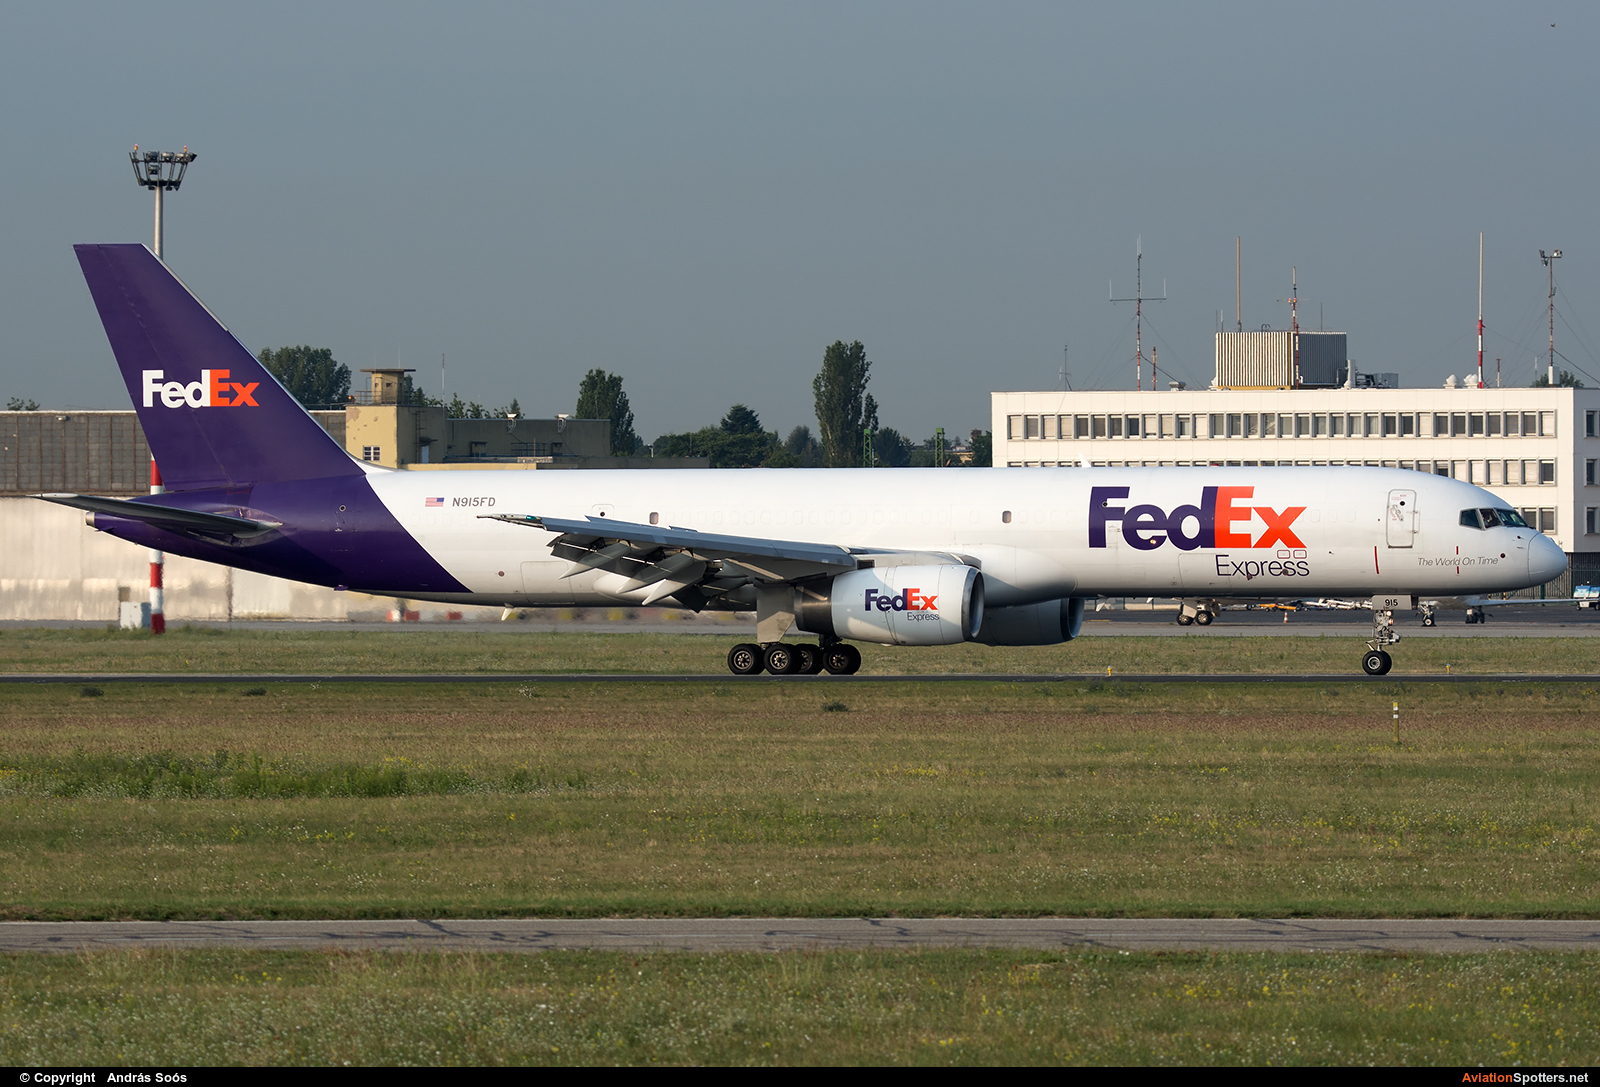 FedEx Federal Express  -  757-200F  (N915FD) By András Soós (sas1965)